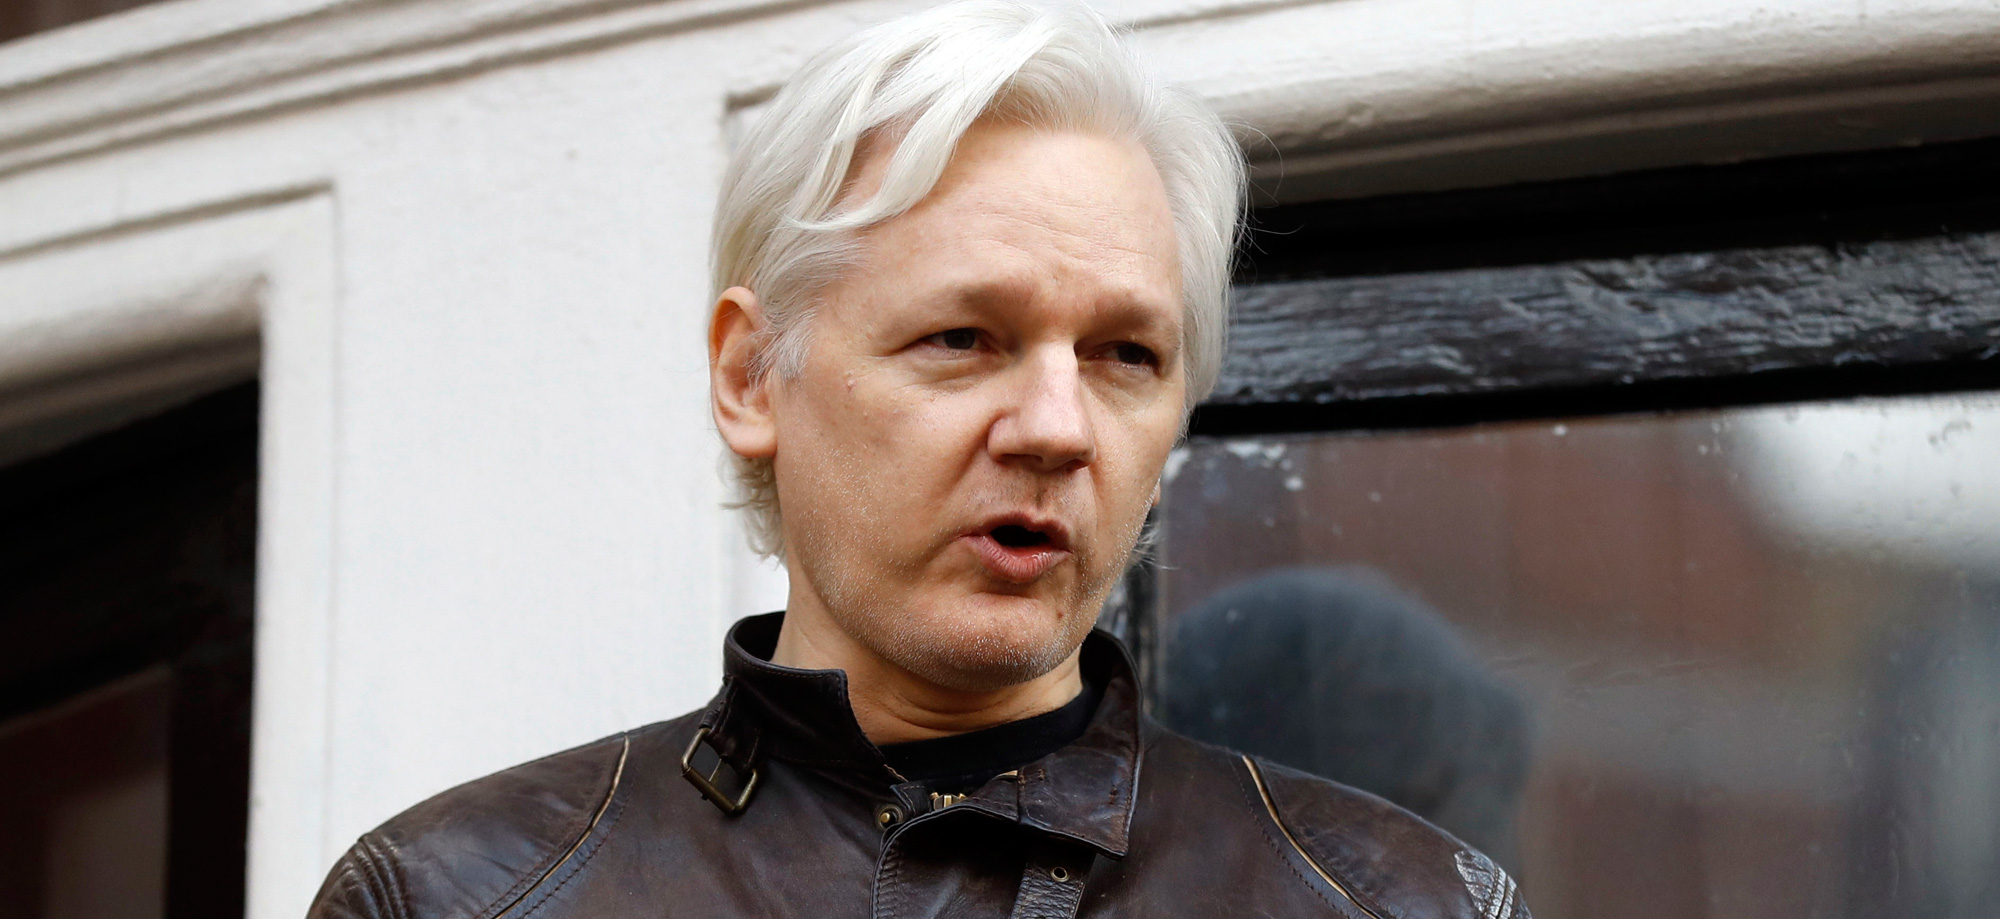 In this May 19, 2017, file photo, WikiLeaks founder Julian Assange gestures to supporters outside the Ecuadorian embassy in London, where he lived in self imposed exile from 2012 until his arrest on April 11, 2019.